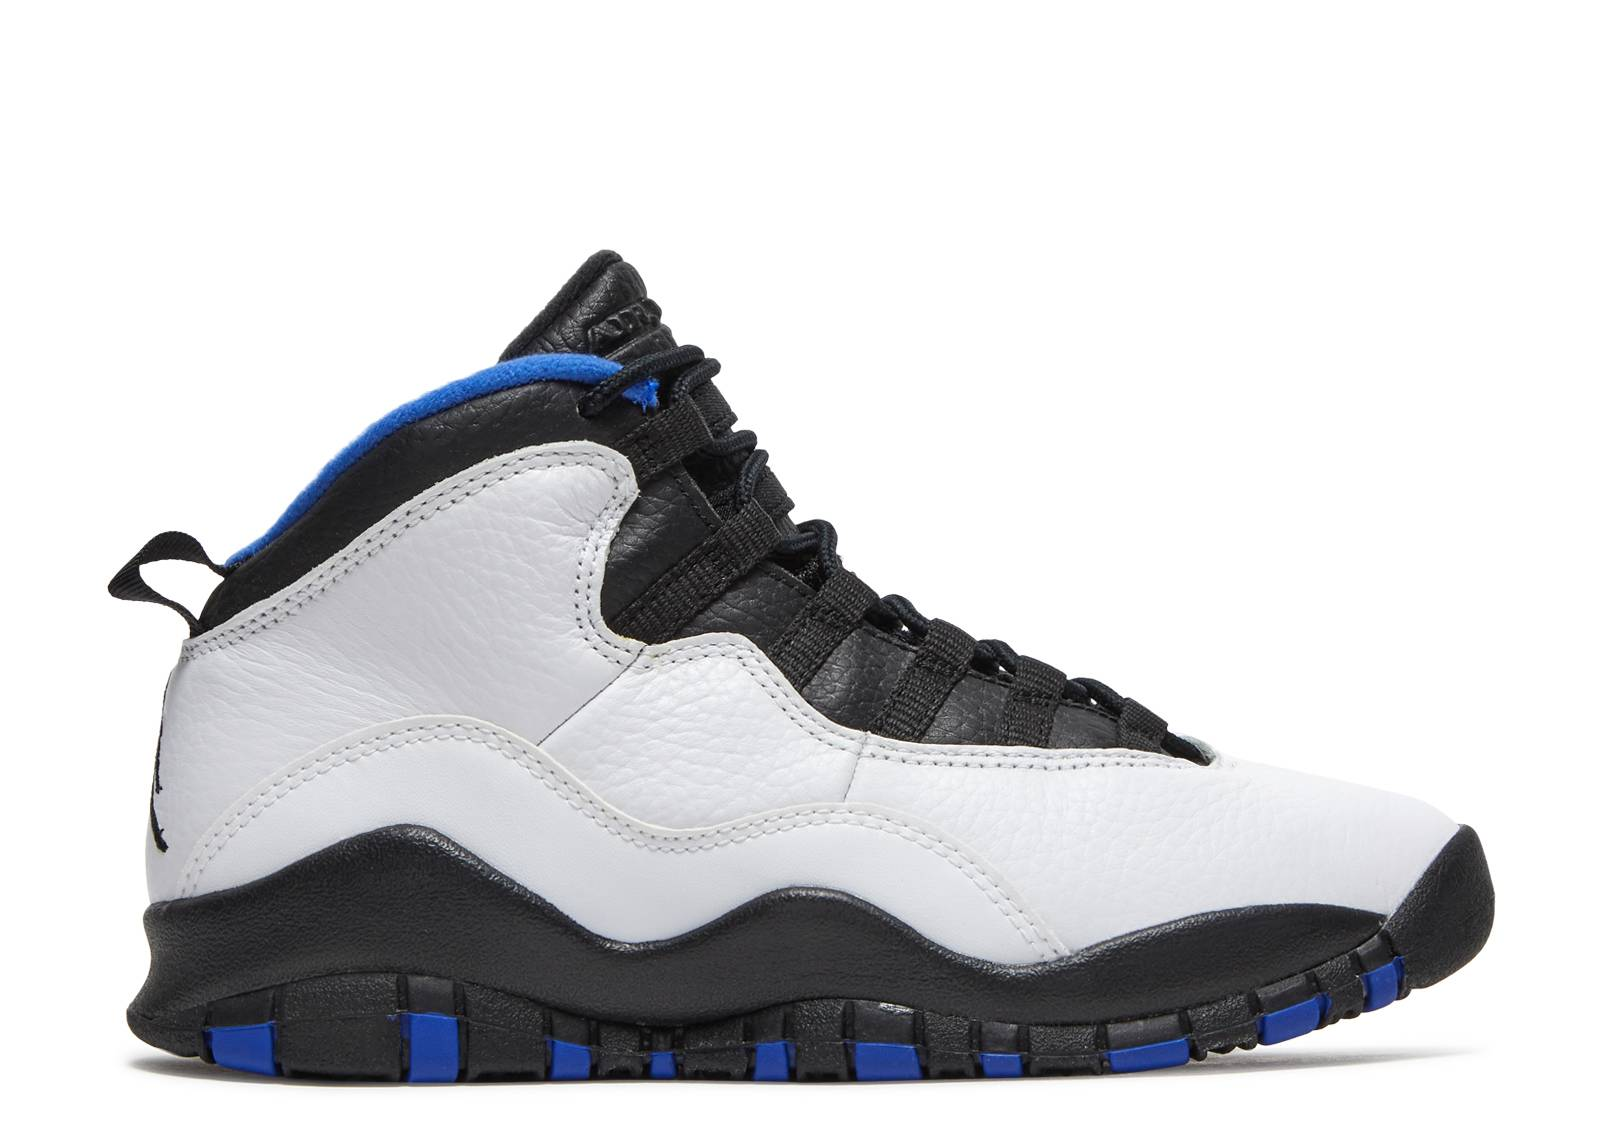 cf306a17dafdfb Air Jordan 10 (X) Shoes - Nike